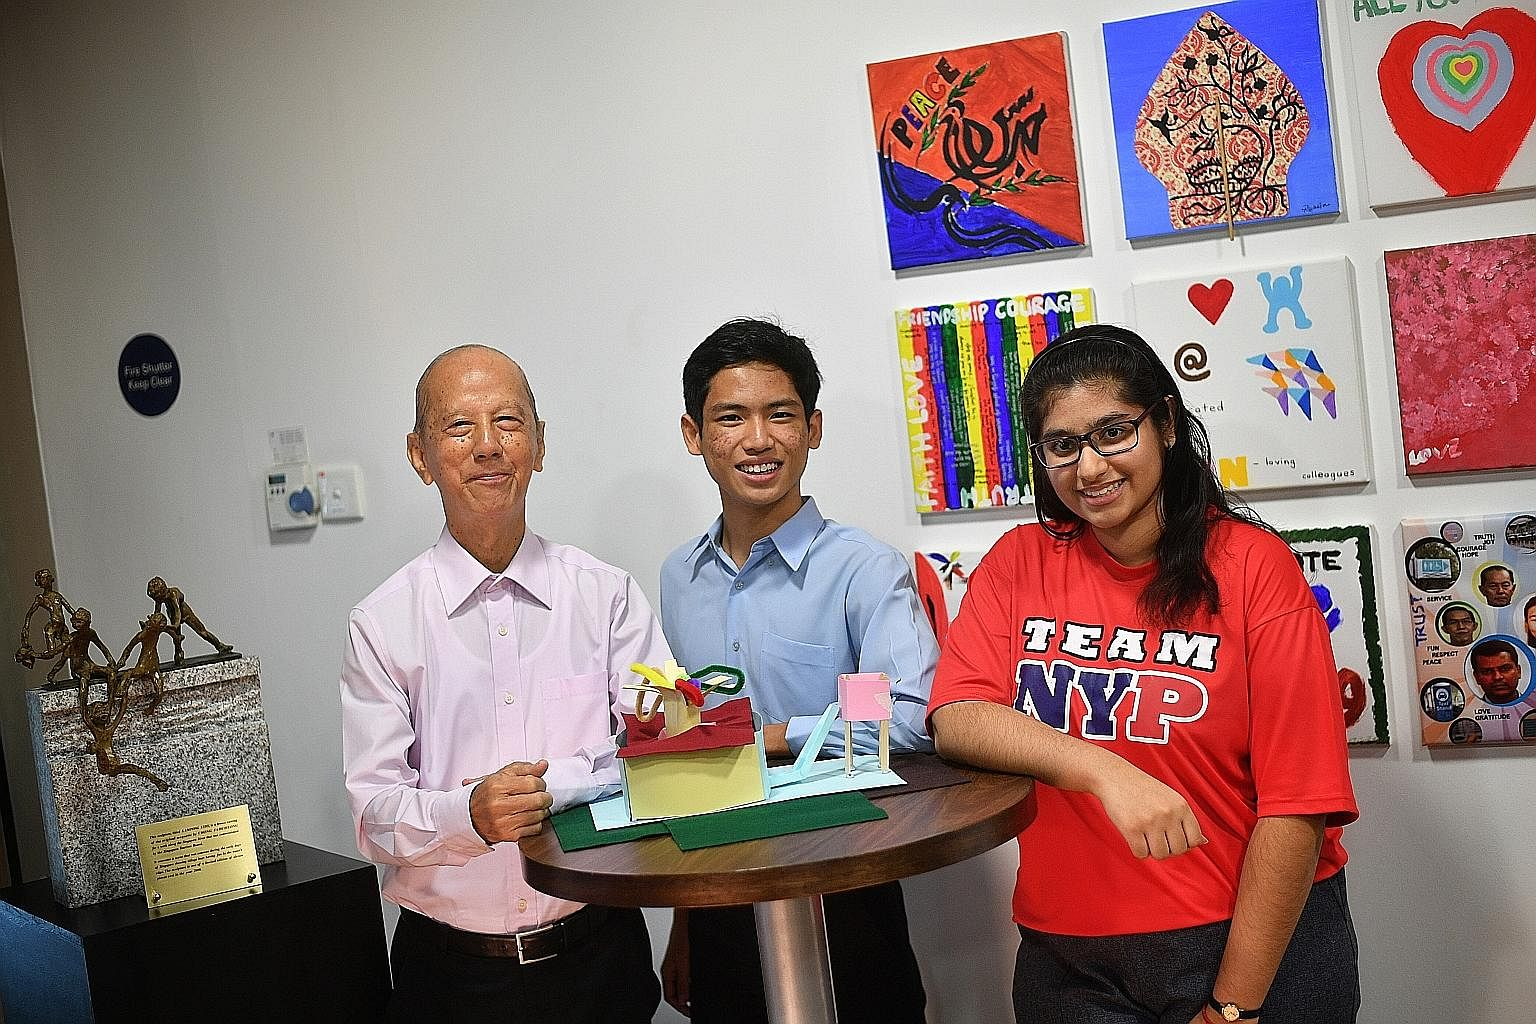 Retiree Low Foo Yong, 79; Mr Nur Hazeem Abdul Nasser, 18, founder of a non-profit youth organisation ALittleChange; and, Ms Nattasha Nina Alvinur, 18, a Nanyang Polytechnic student were among the public participants who shared their views